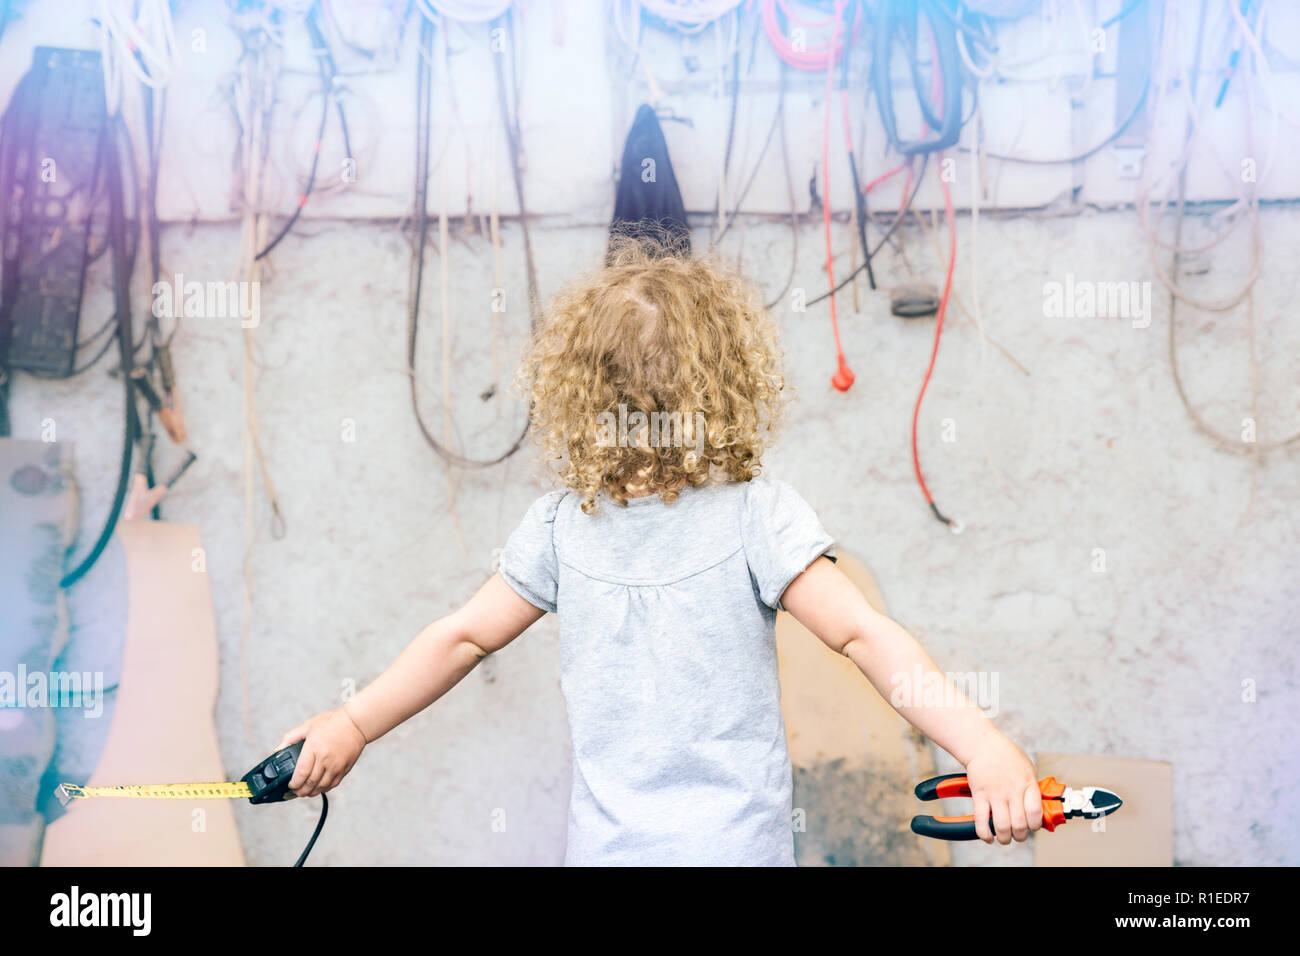 Young girl child hand holding pliers and measuring tape facing the problems, organizes mess on the background, conquering problems concept. - Stock Image